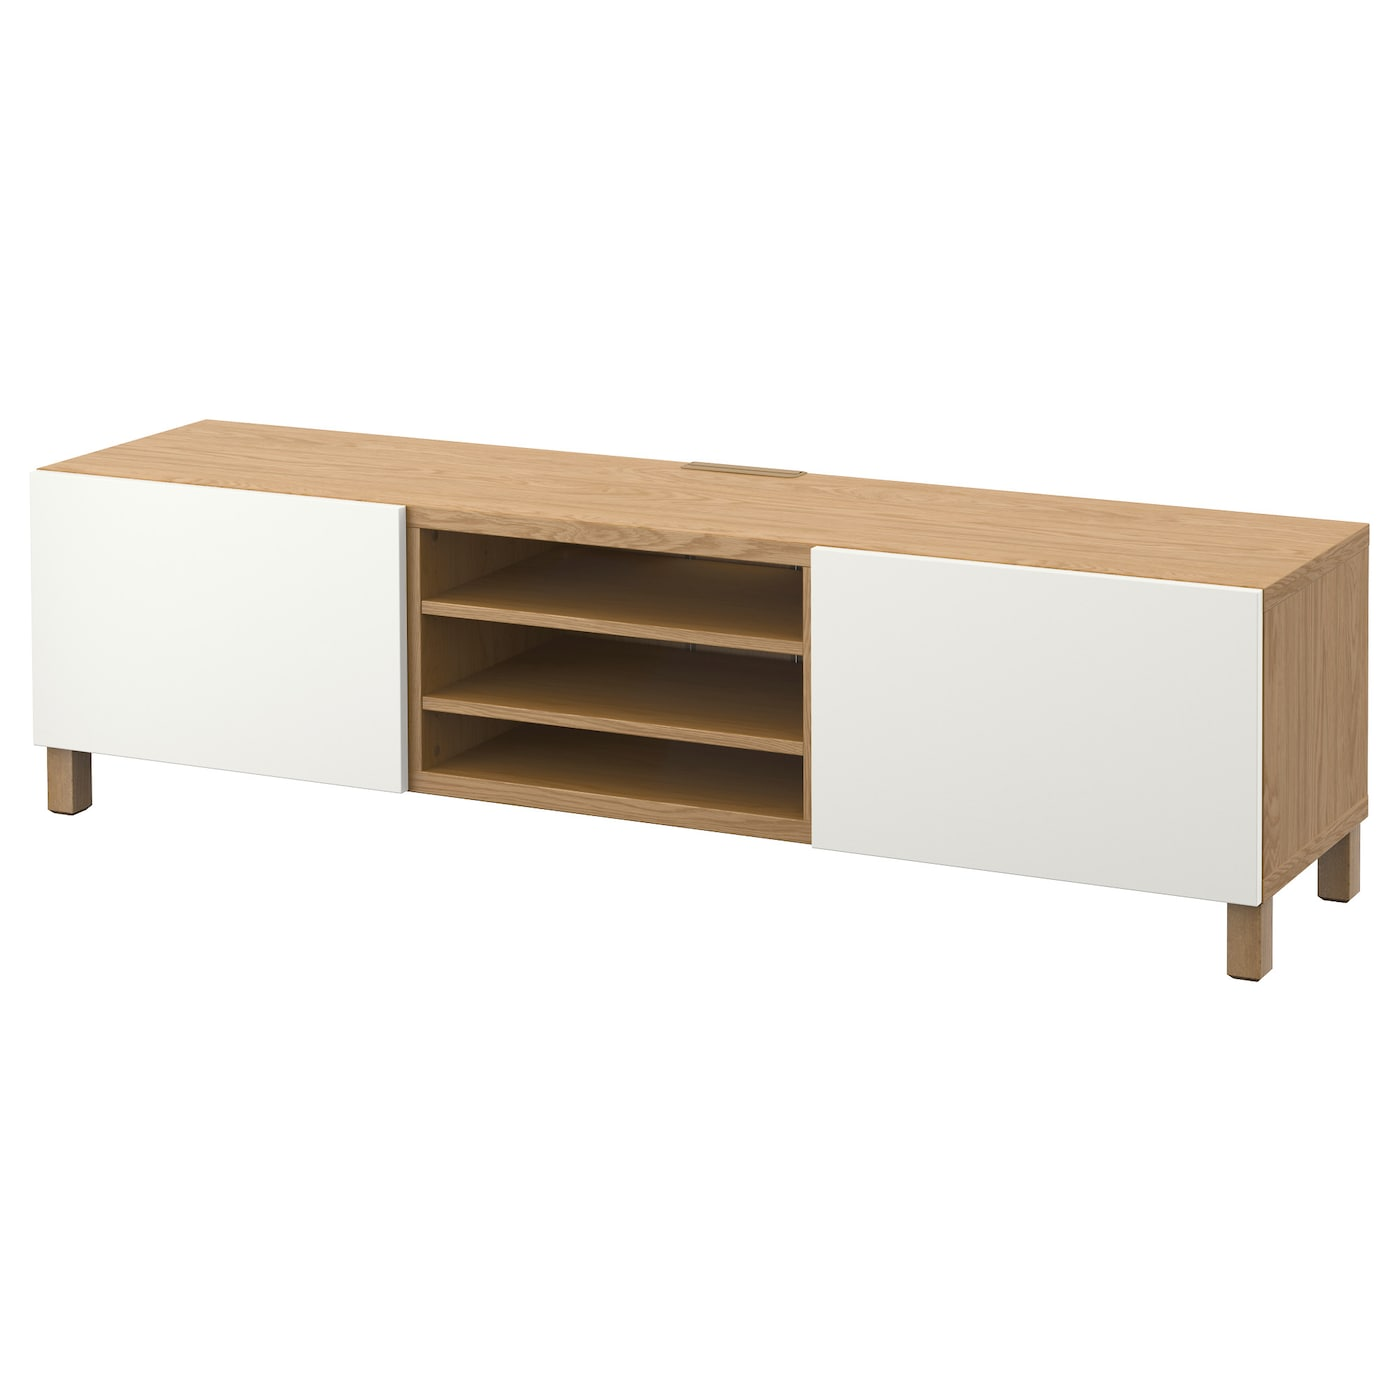 Best Tv Bench With Drawers Oak Effect Lappviken White 180x40x48 Cm Ikea